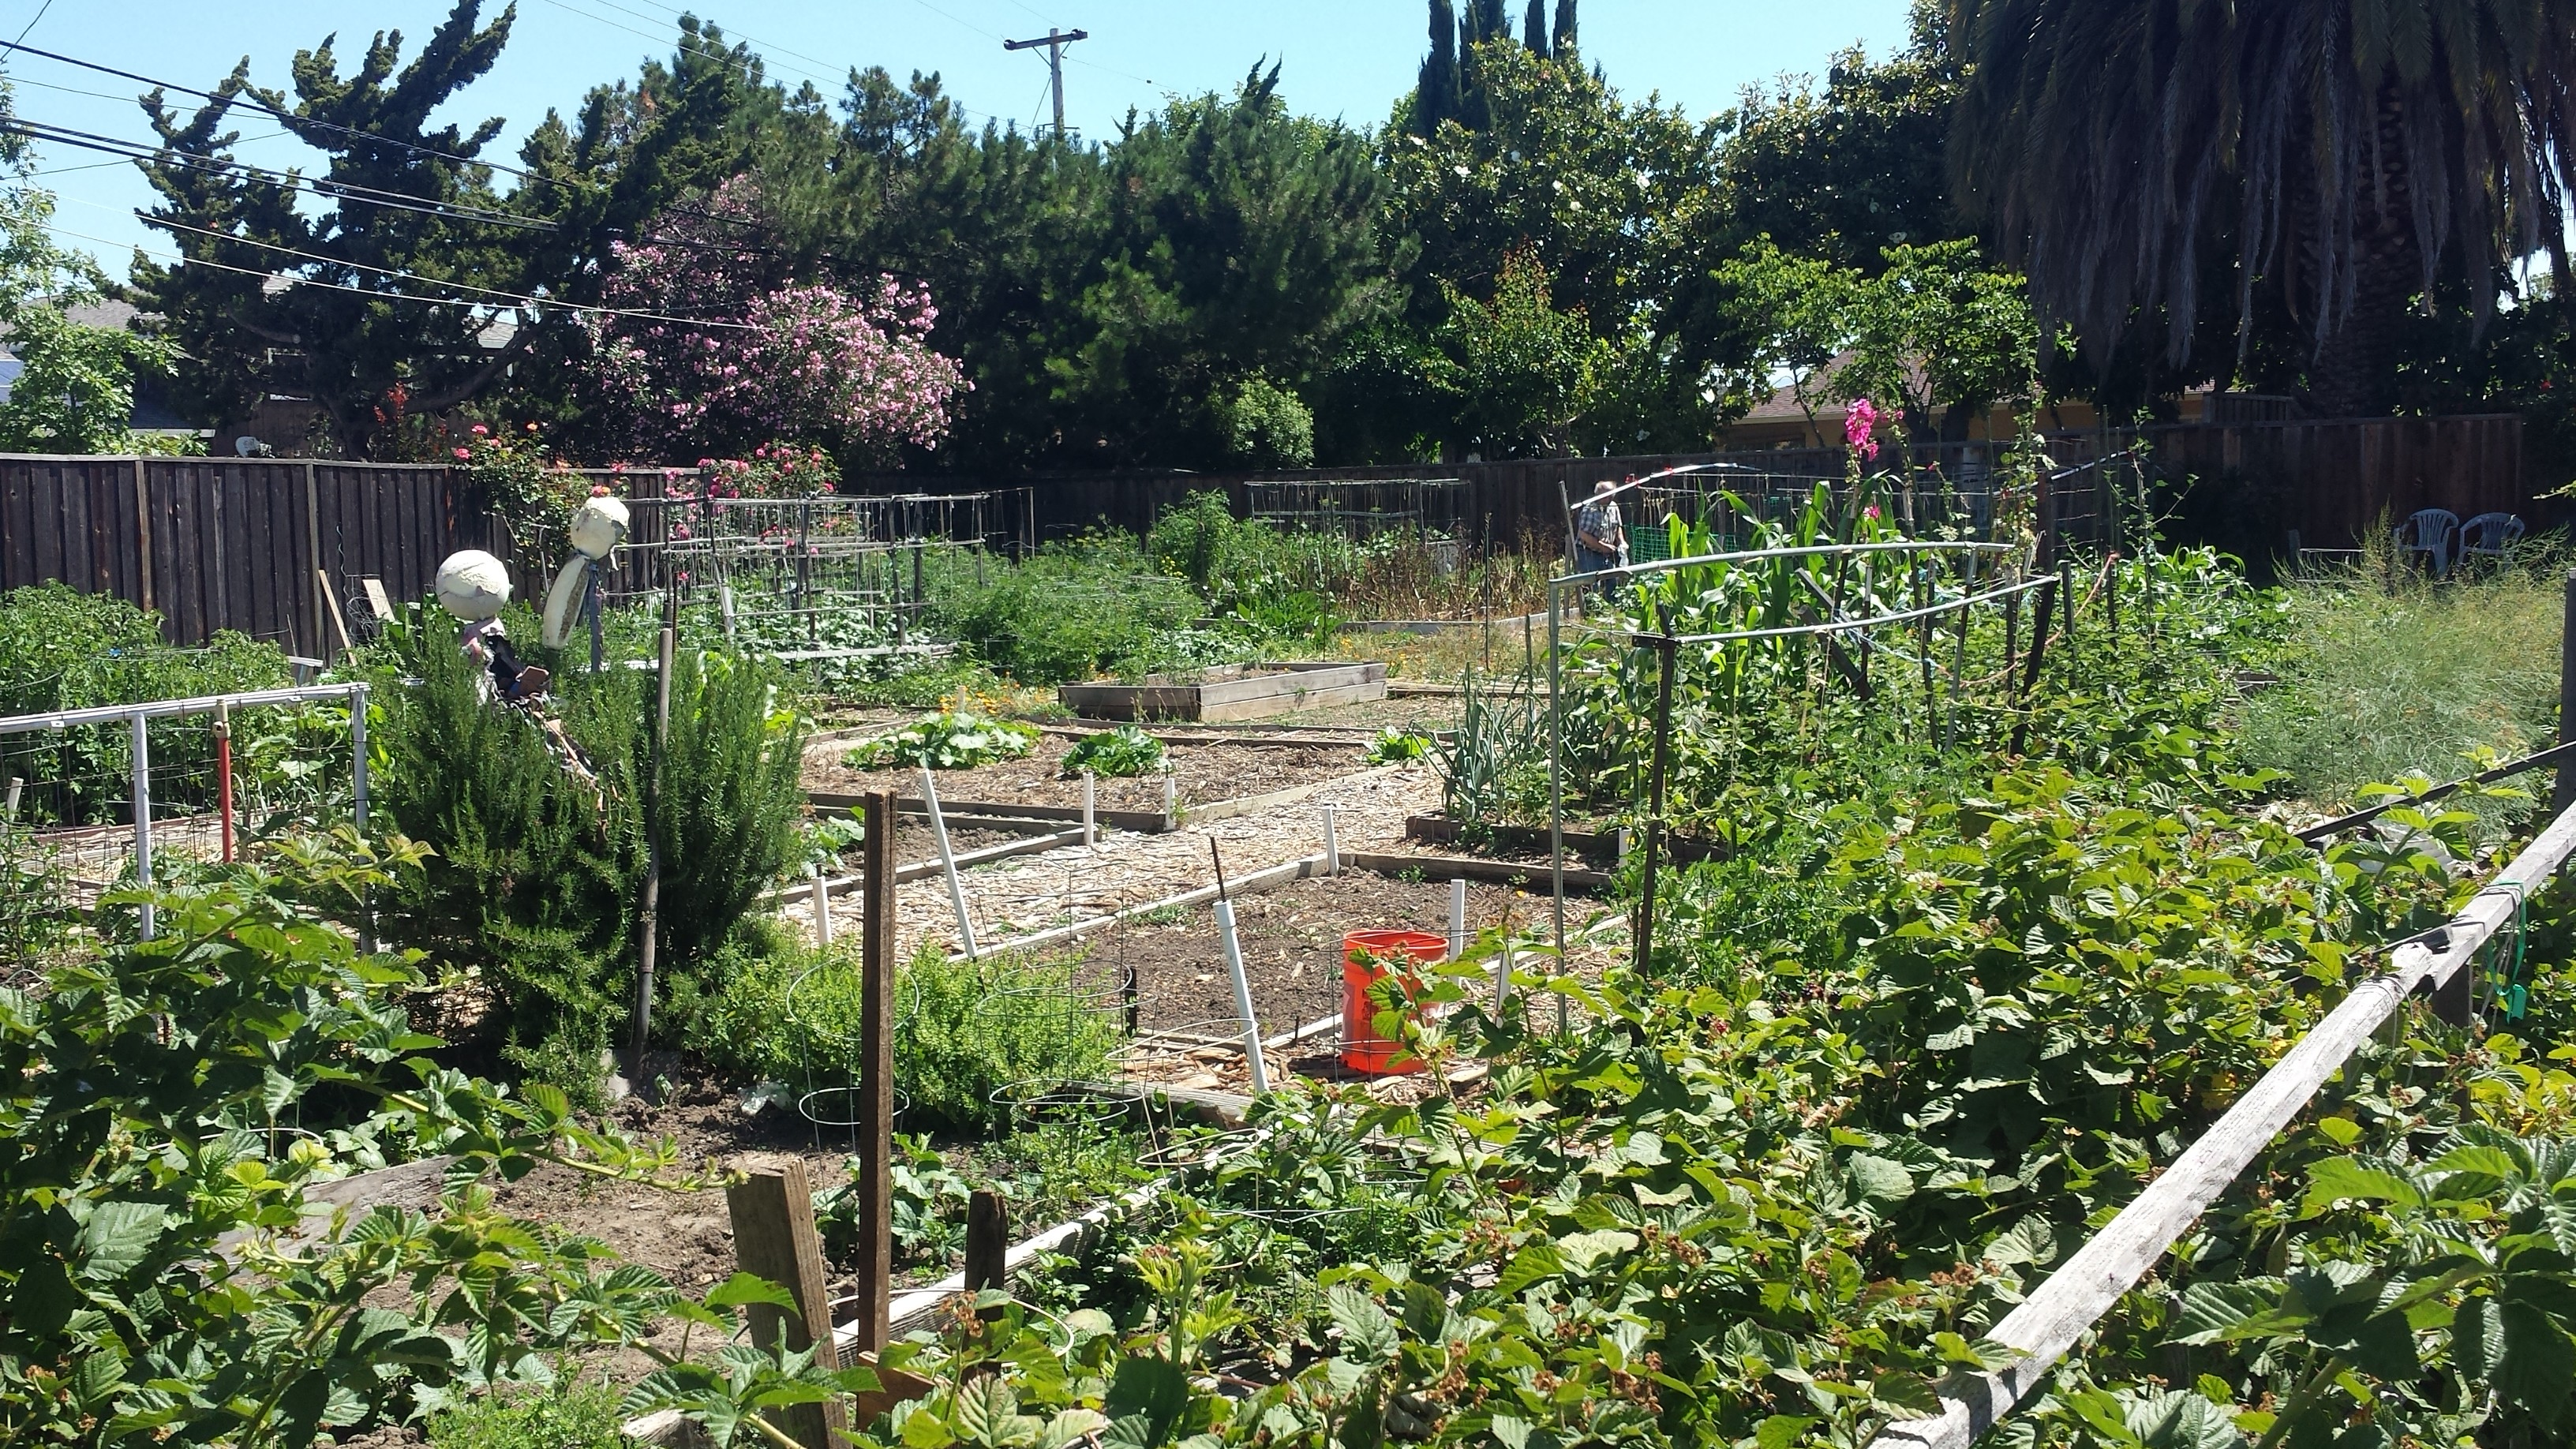 Existing Neighborhood Garden